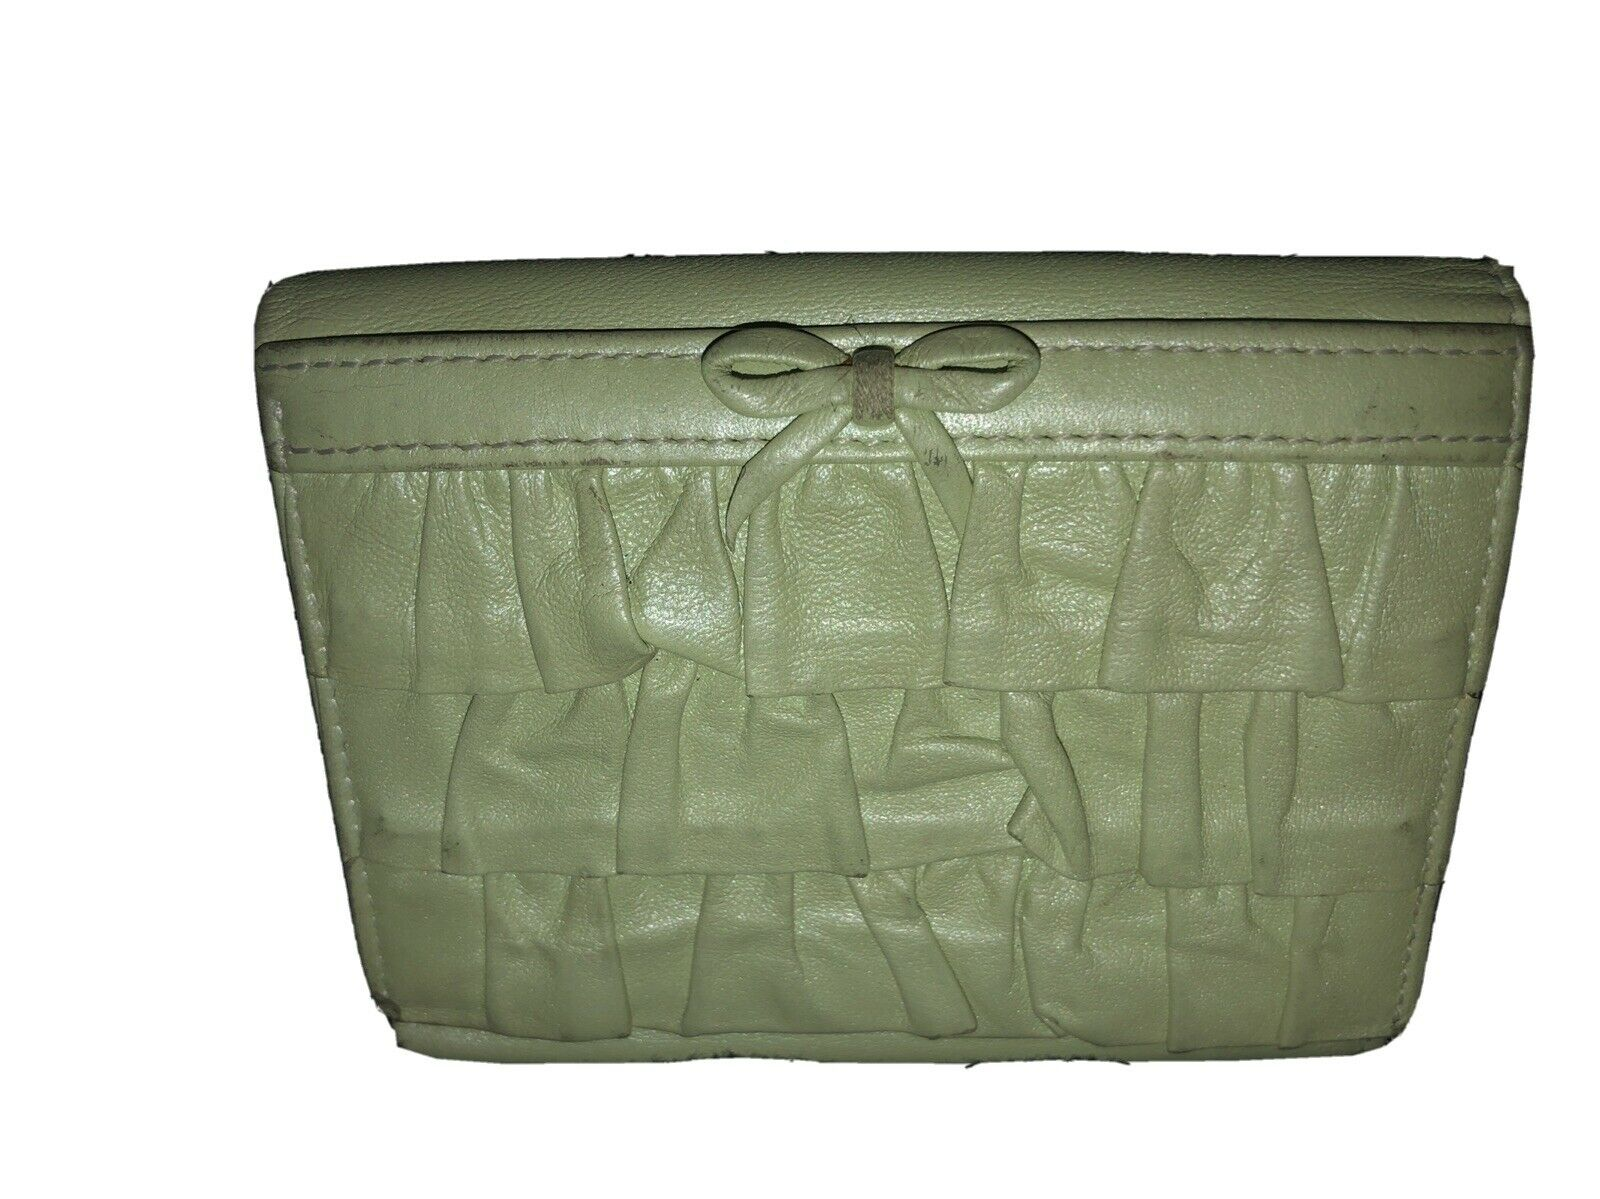 LOVCAT Lime Green Trifold Leather Wallet-Ruffles-6 Slots-ID-Heart Change Clasp